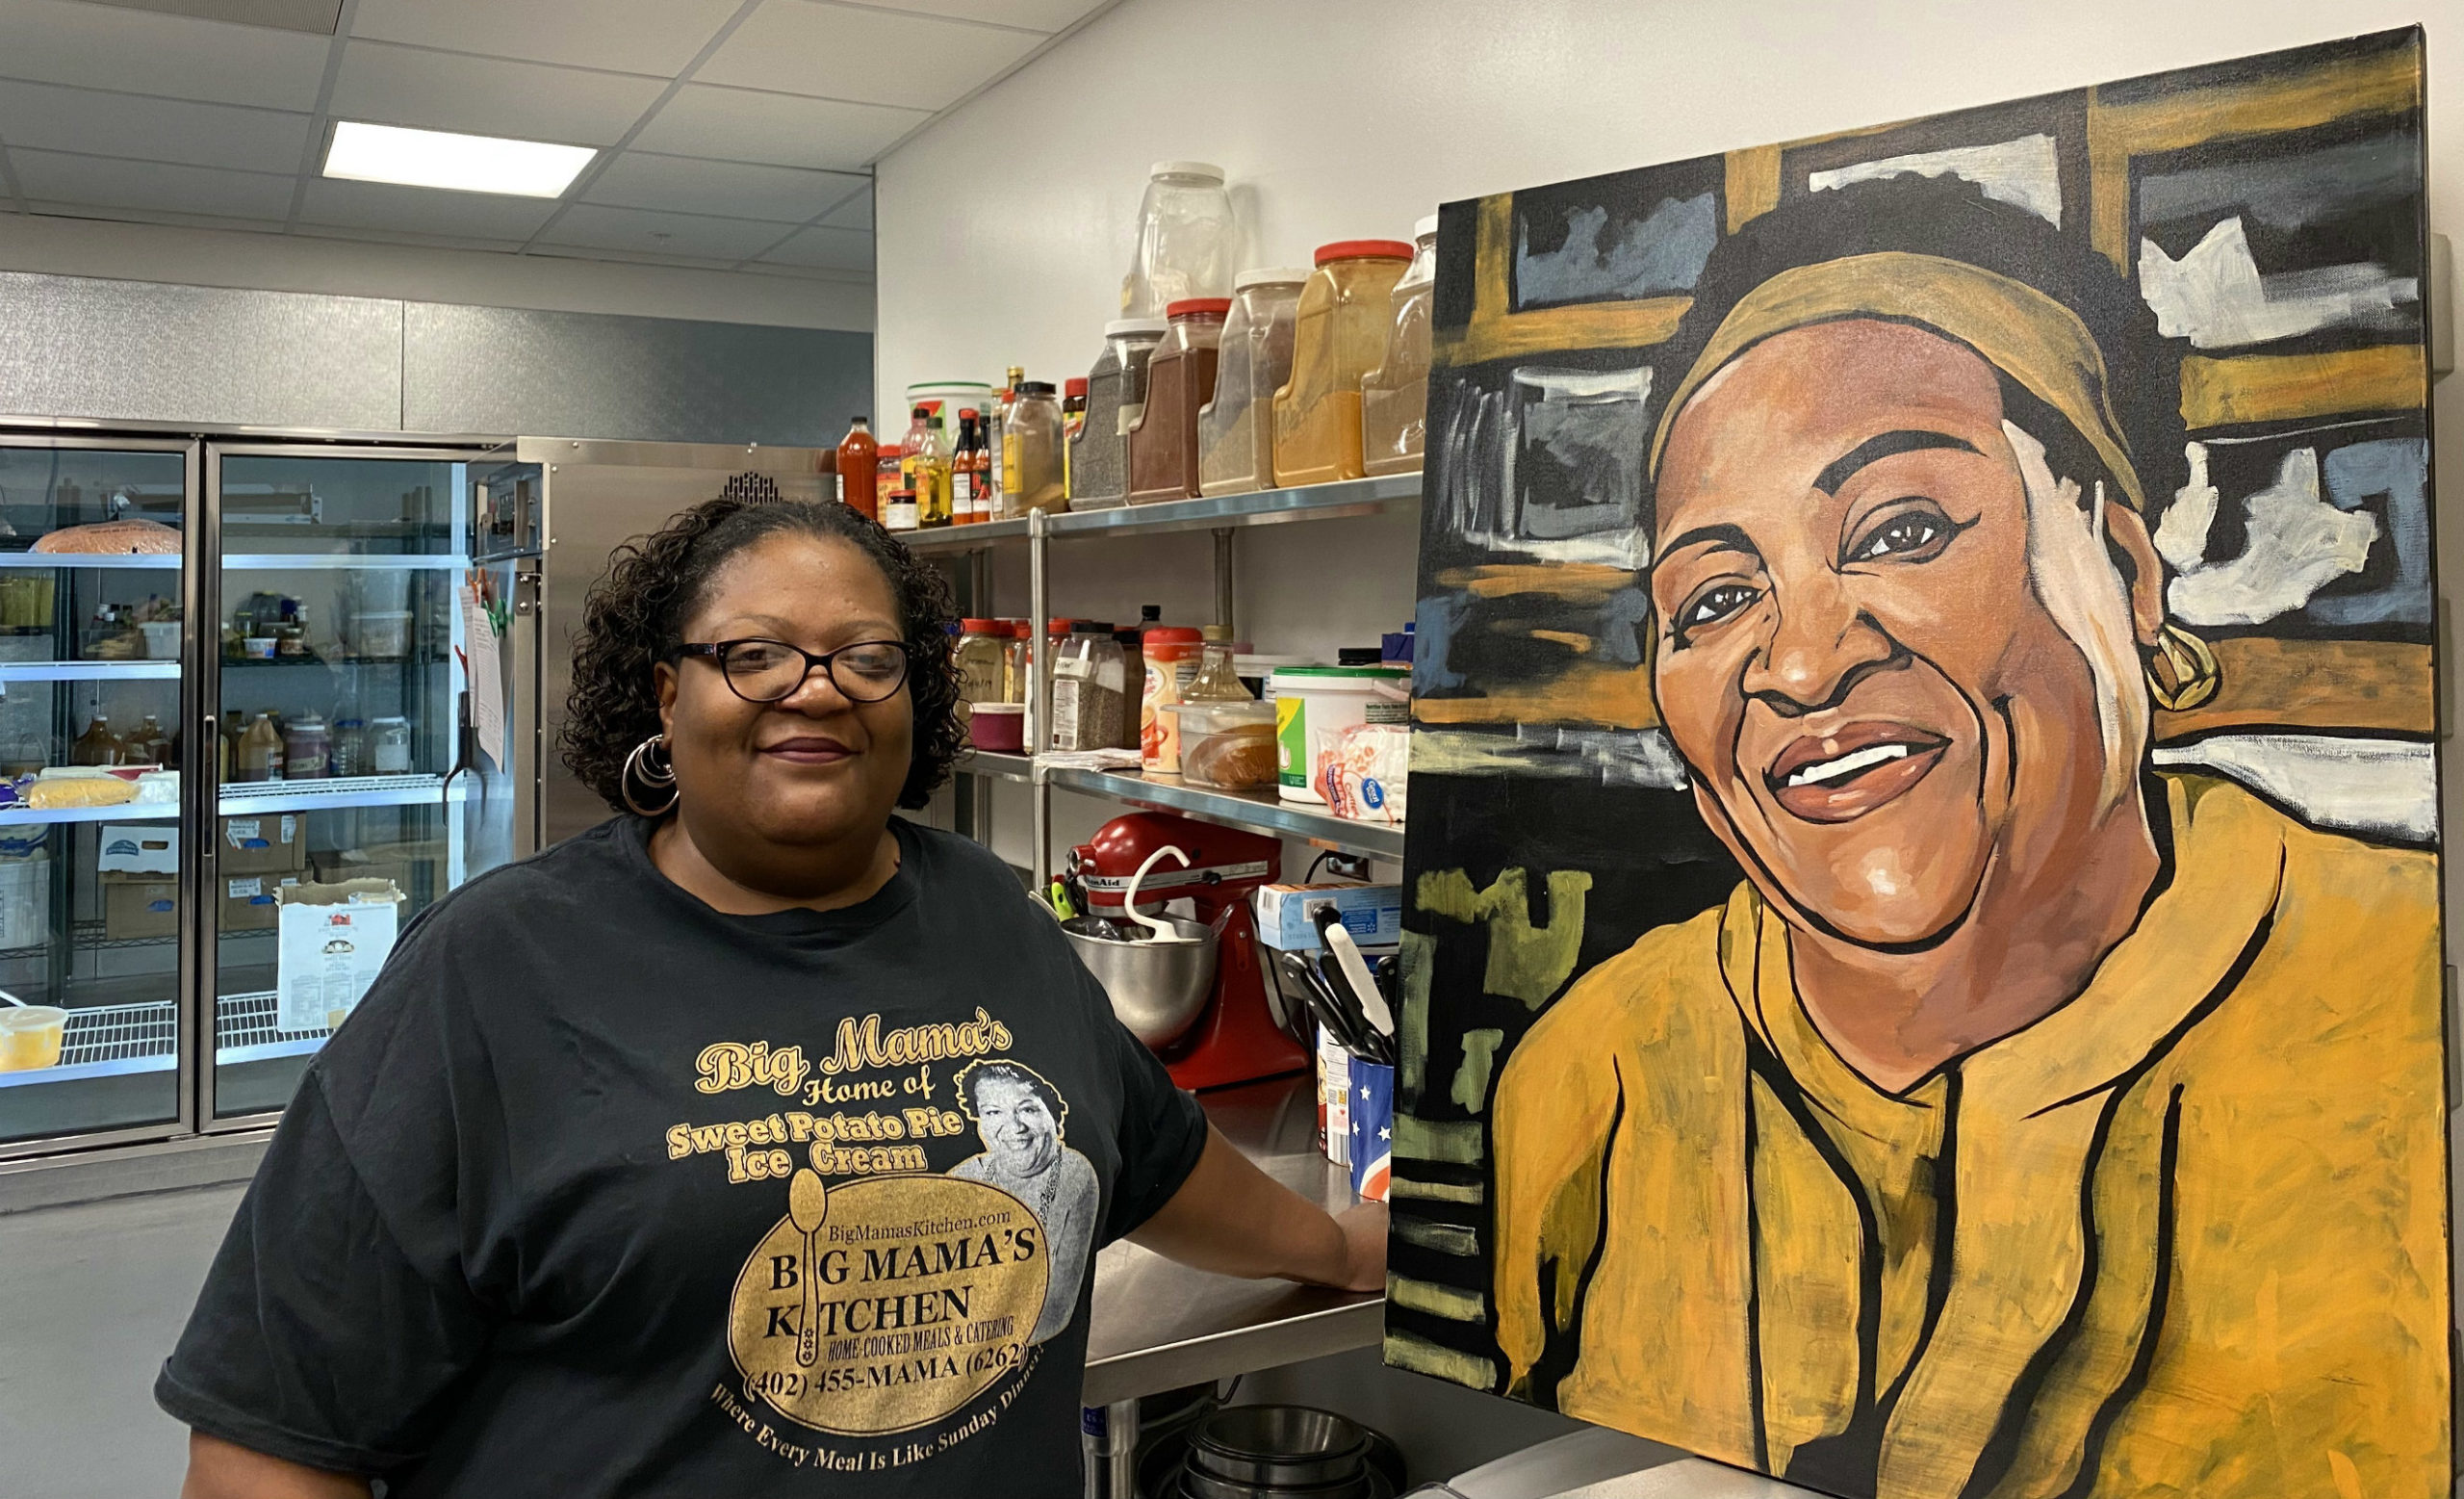 Big Mama S Kitchen Is The First Restaurant To Open In The New 75 North Food Hall Sarah Baker Hansen